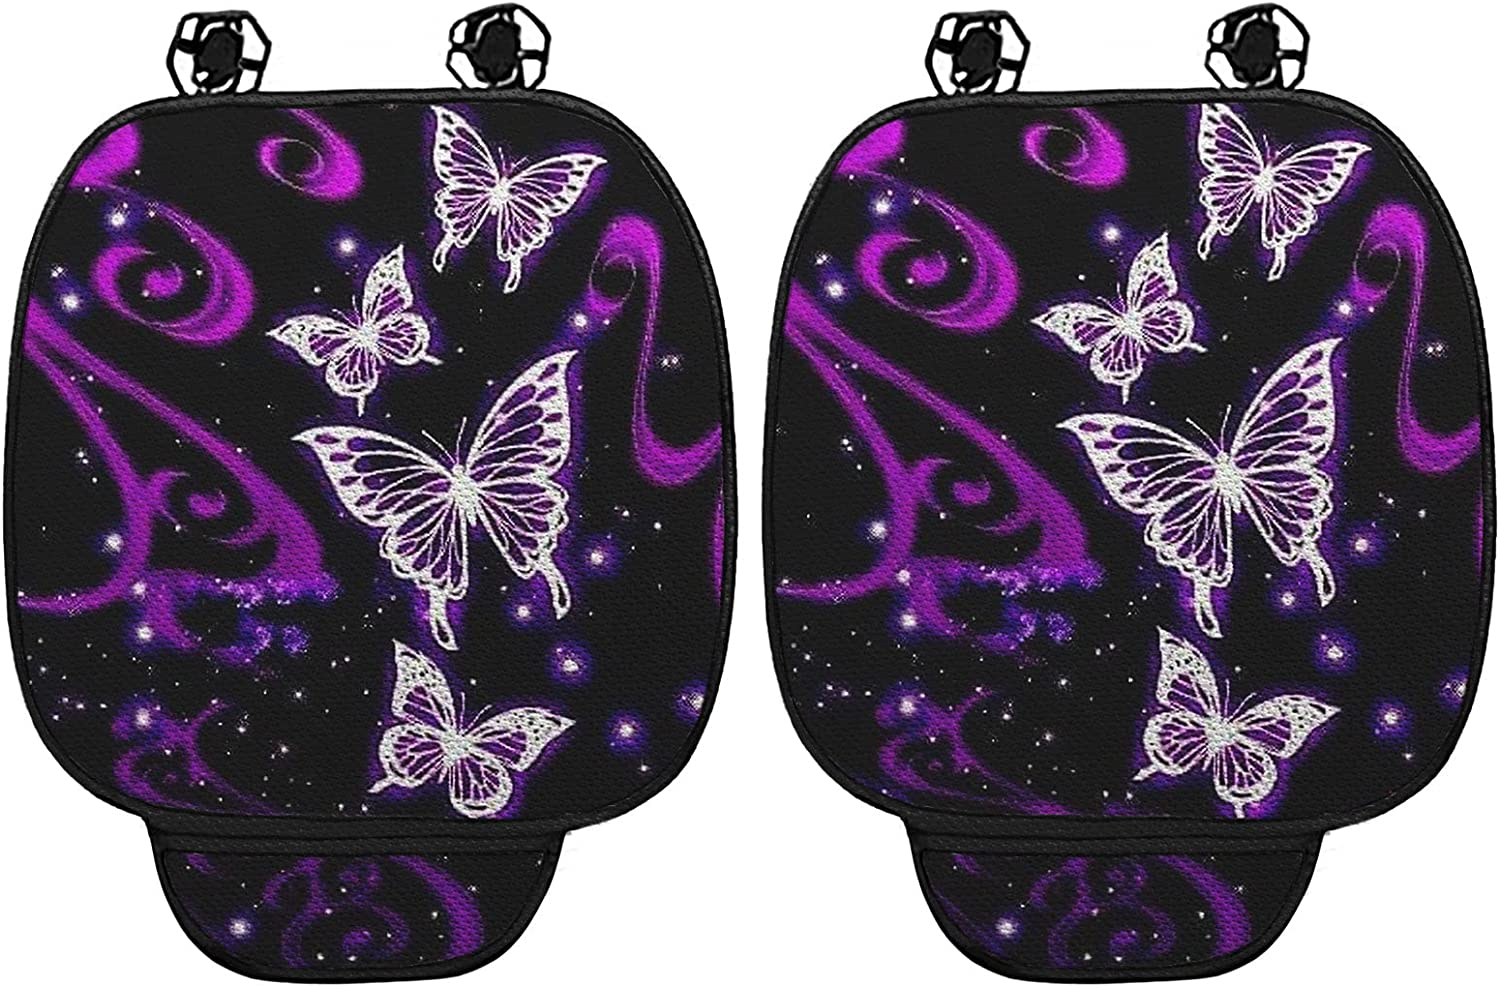 WELLFLYHOM Butterfly Car Seat Cushion Pad for Car Driver Seat Set of 2,Car Seat Cushion Front Seat Bottoms Protectors with Pocket,Purple Auto Seat Cushions for Cars Accessories